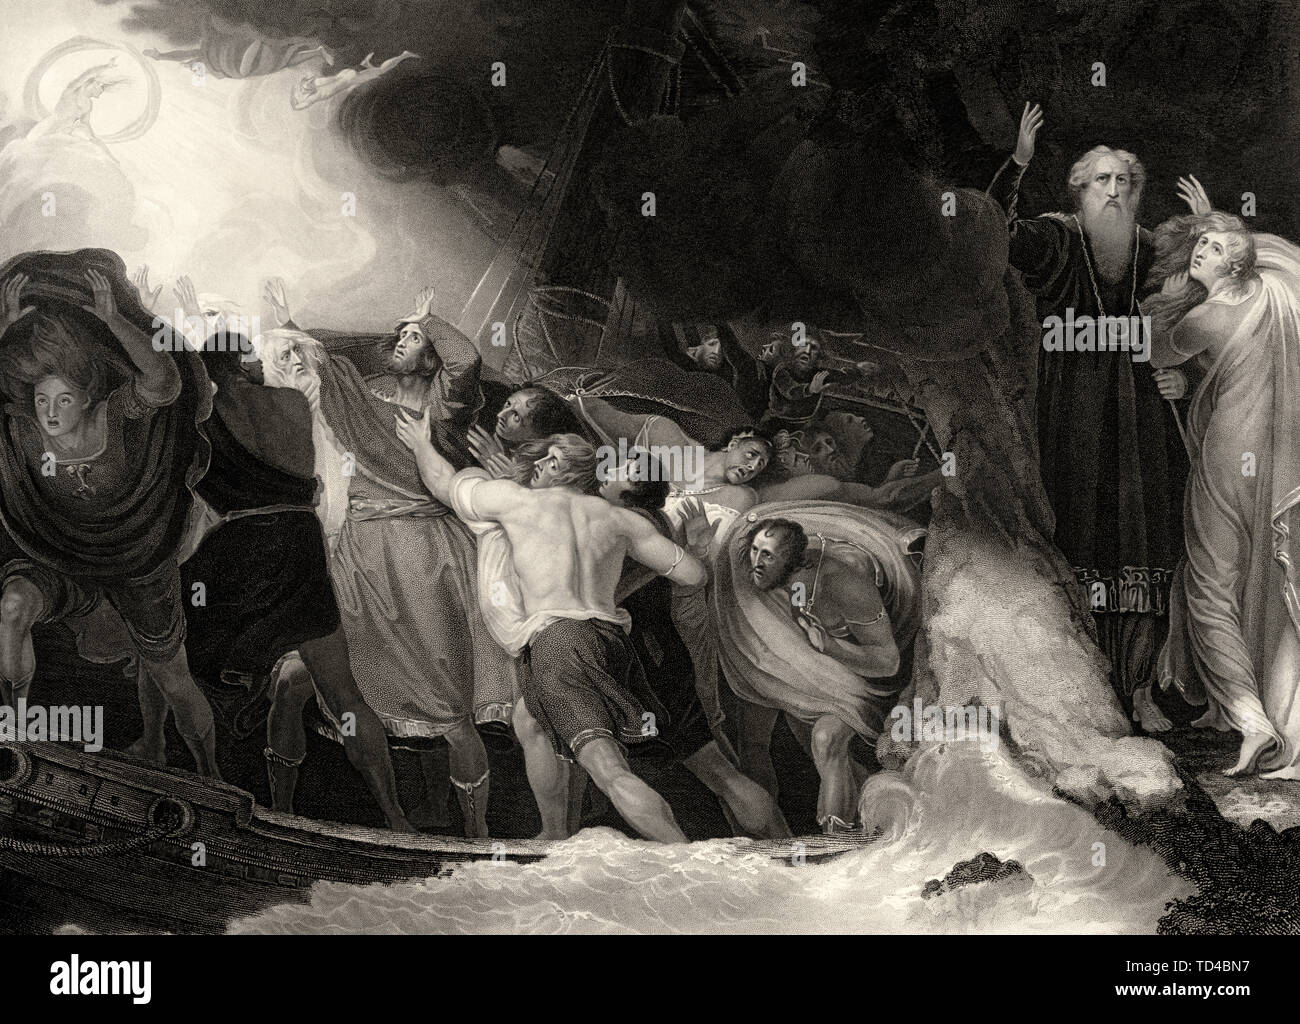 Act I, Scene 1 of The Tempest by William Shakespeare. The titular tempest wrecks the ship of King Alonso. As revealed in Act I, Scene 2, the tempest was conjured by Prospero (old man, right), who sent the spirits (seen in the upper left) to create the storm. Stock Photo